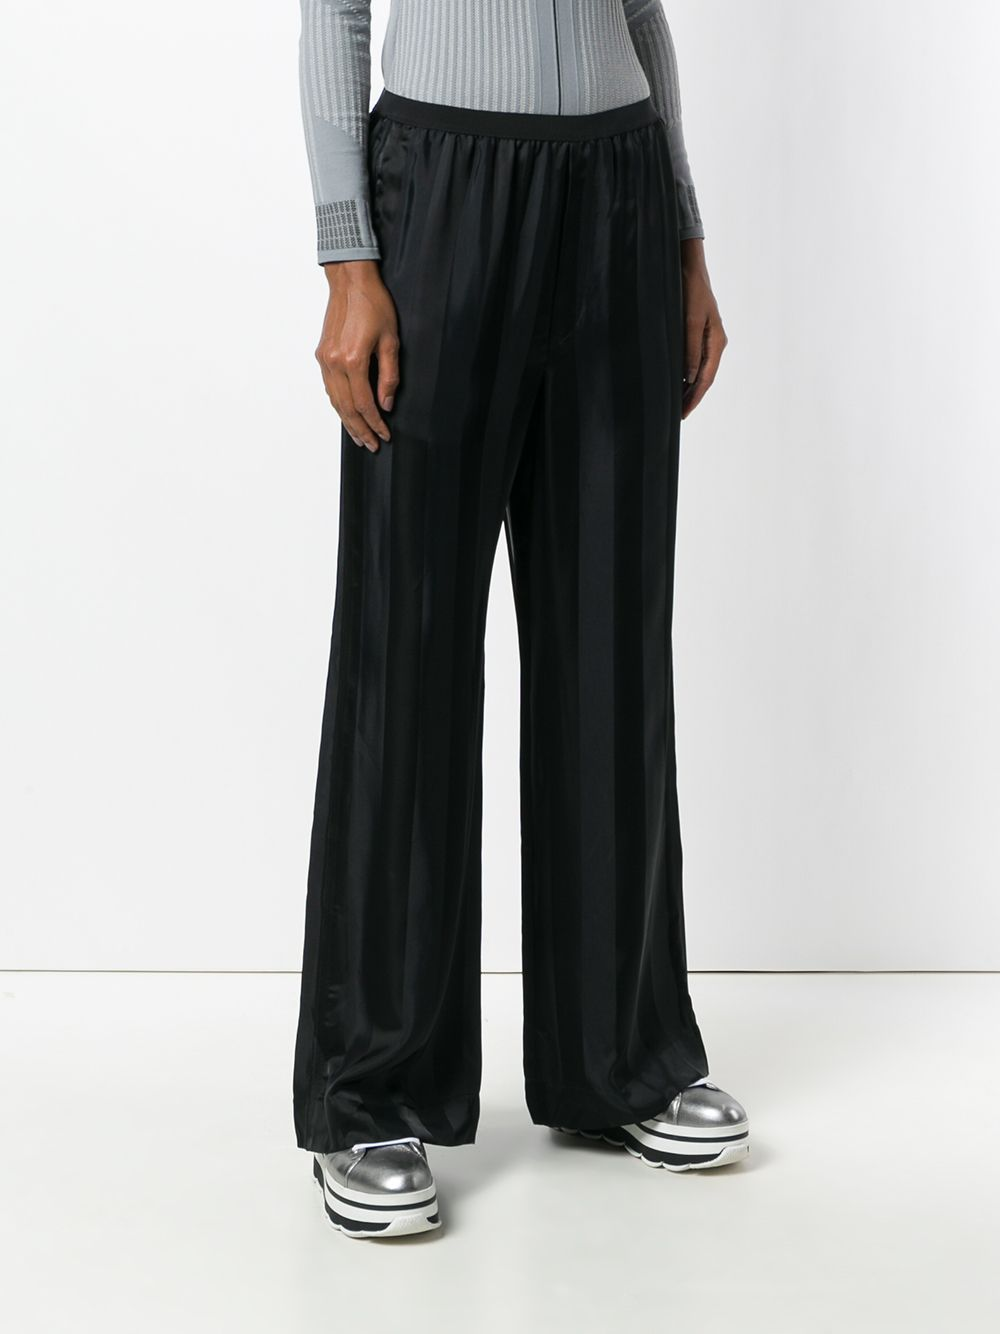 Marc Jacobs High Rise Black Pants